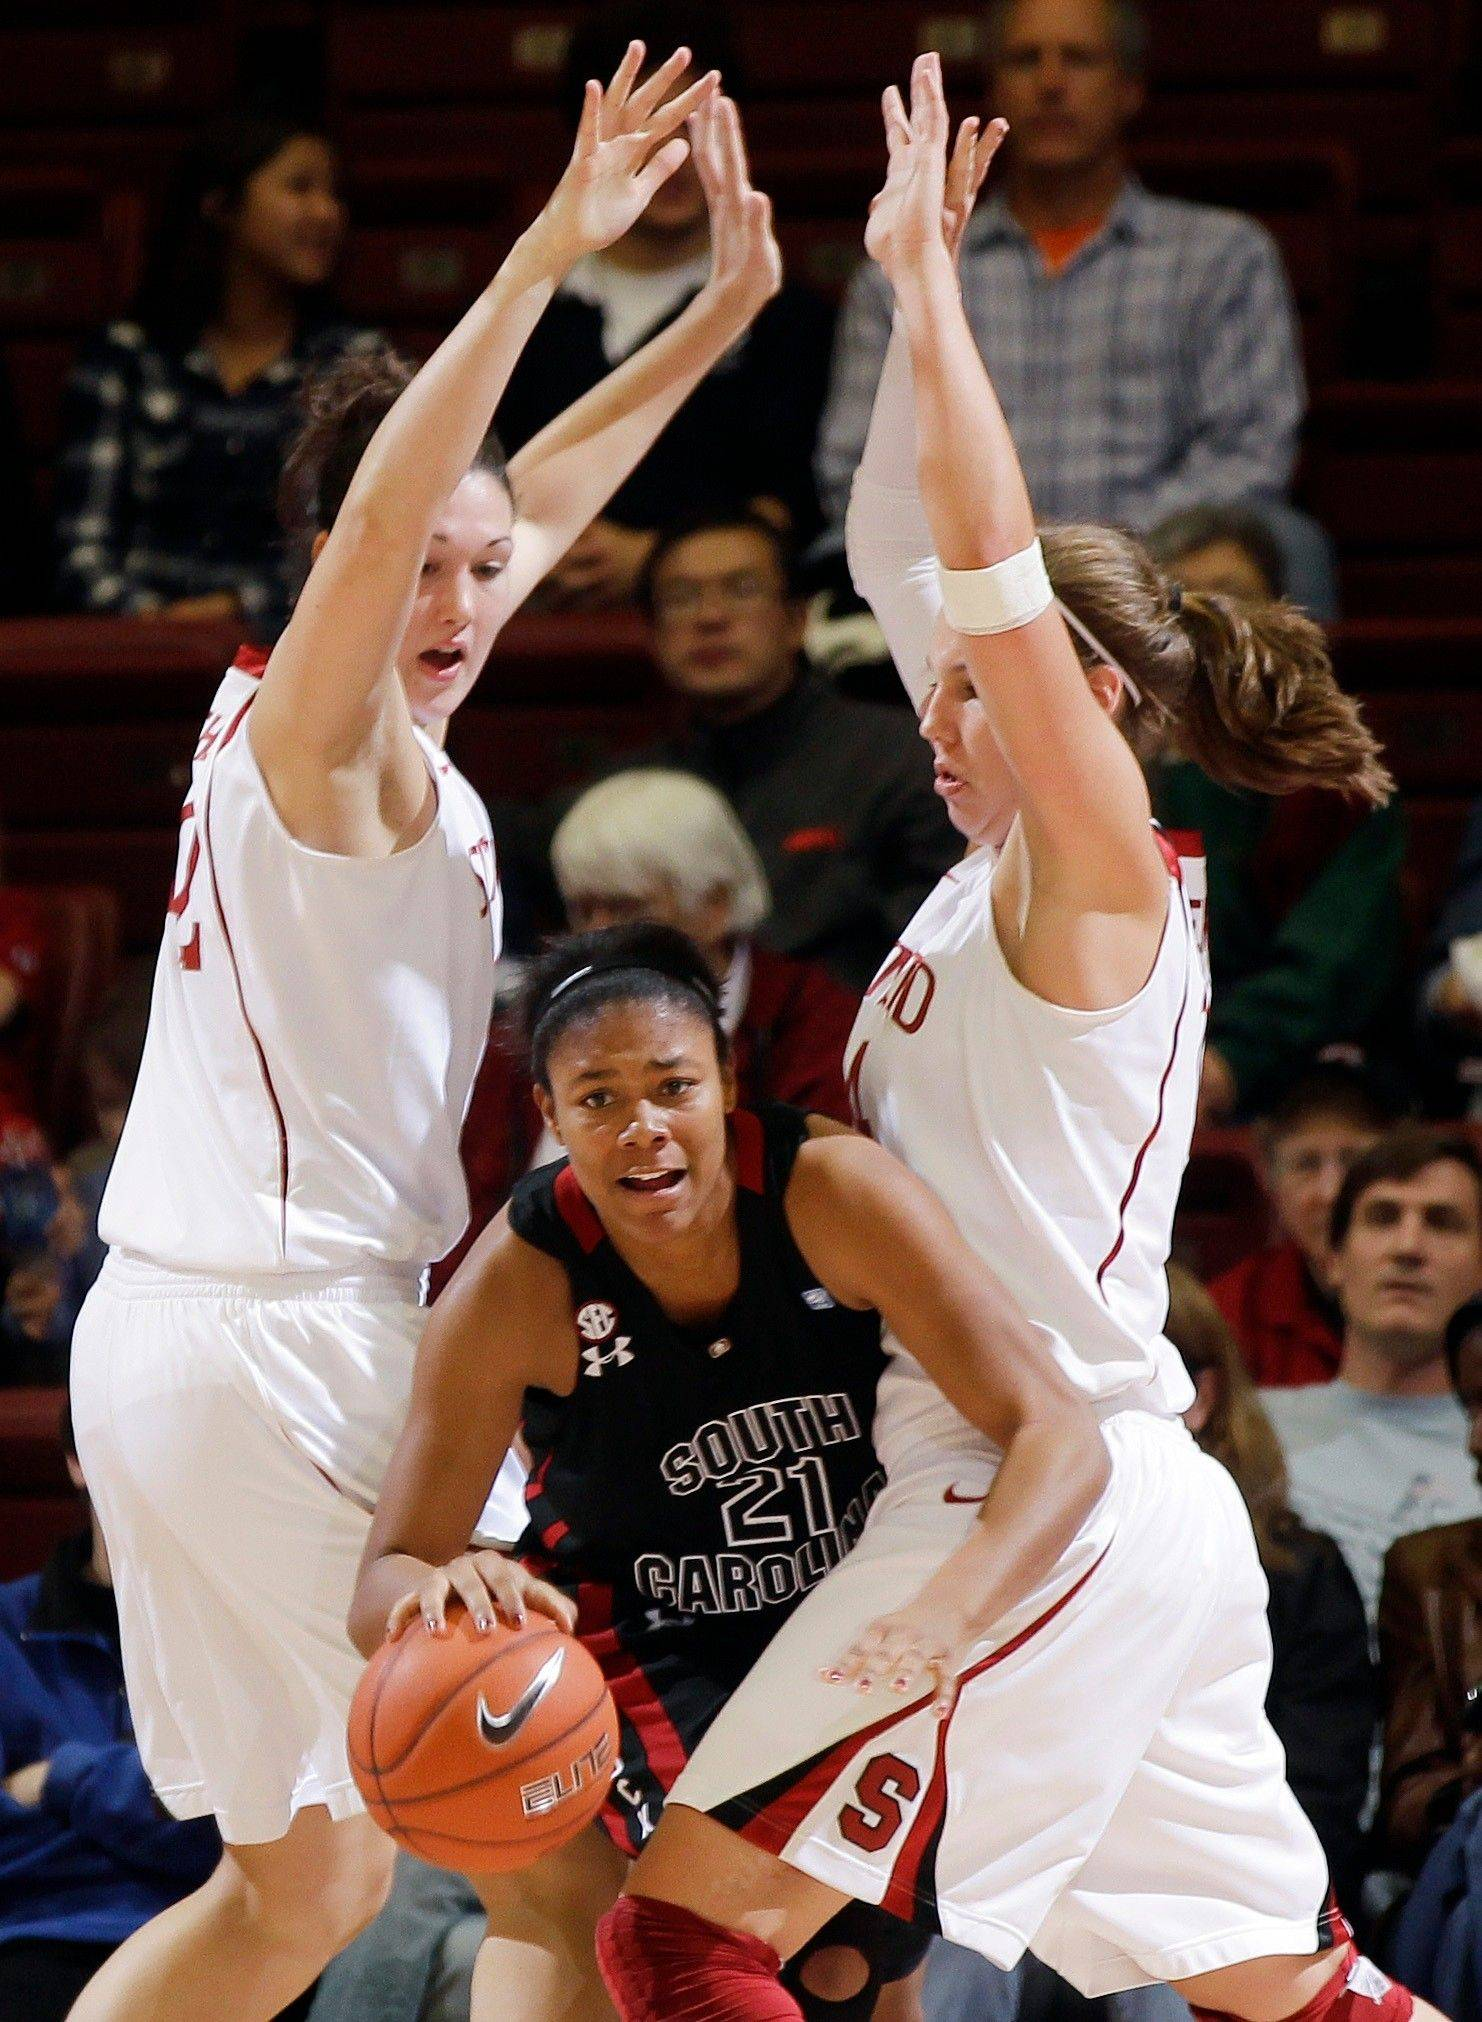 South Carolina forward Ashley Bruner, center, is defended by Stanford forward Sarah Boothe, left, and Kayla Pedersen as the Cardinal crushed South Carolina 70-32 last month. Boothe is a former All-Area captain for the Daily Herald. and the first person off the bench for Stanford, which plays at DePaul on Thursday.